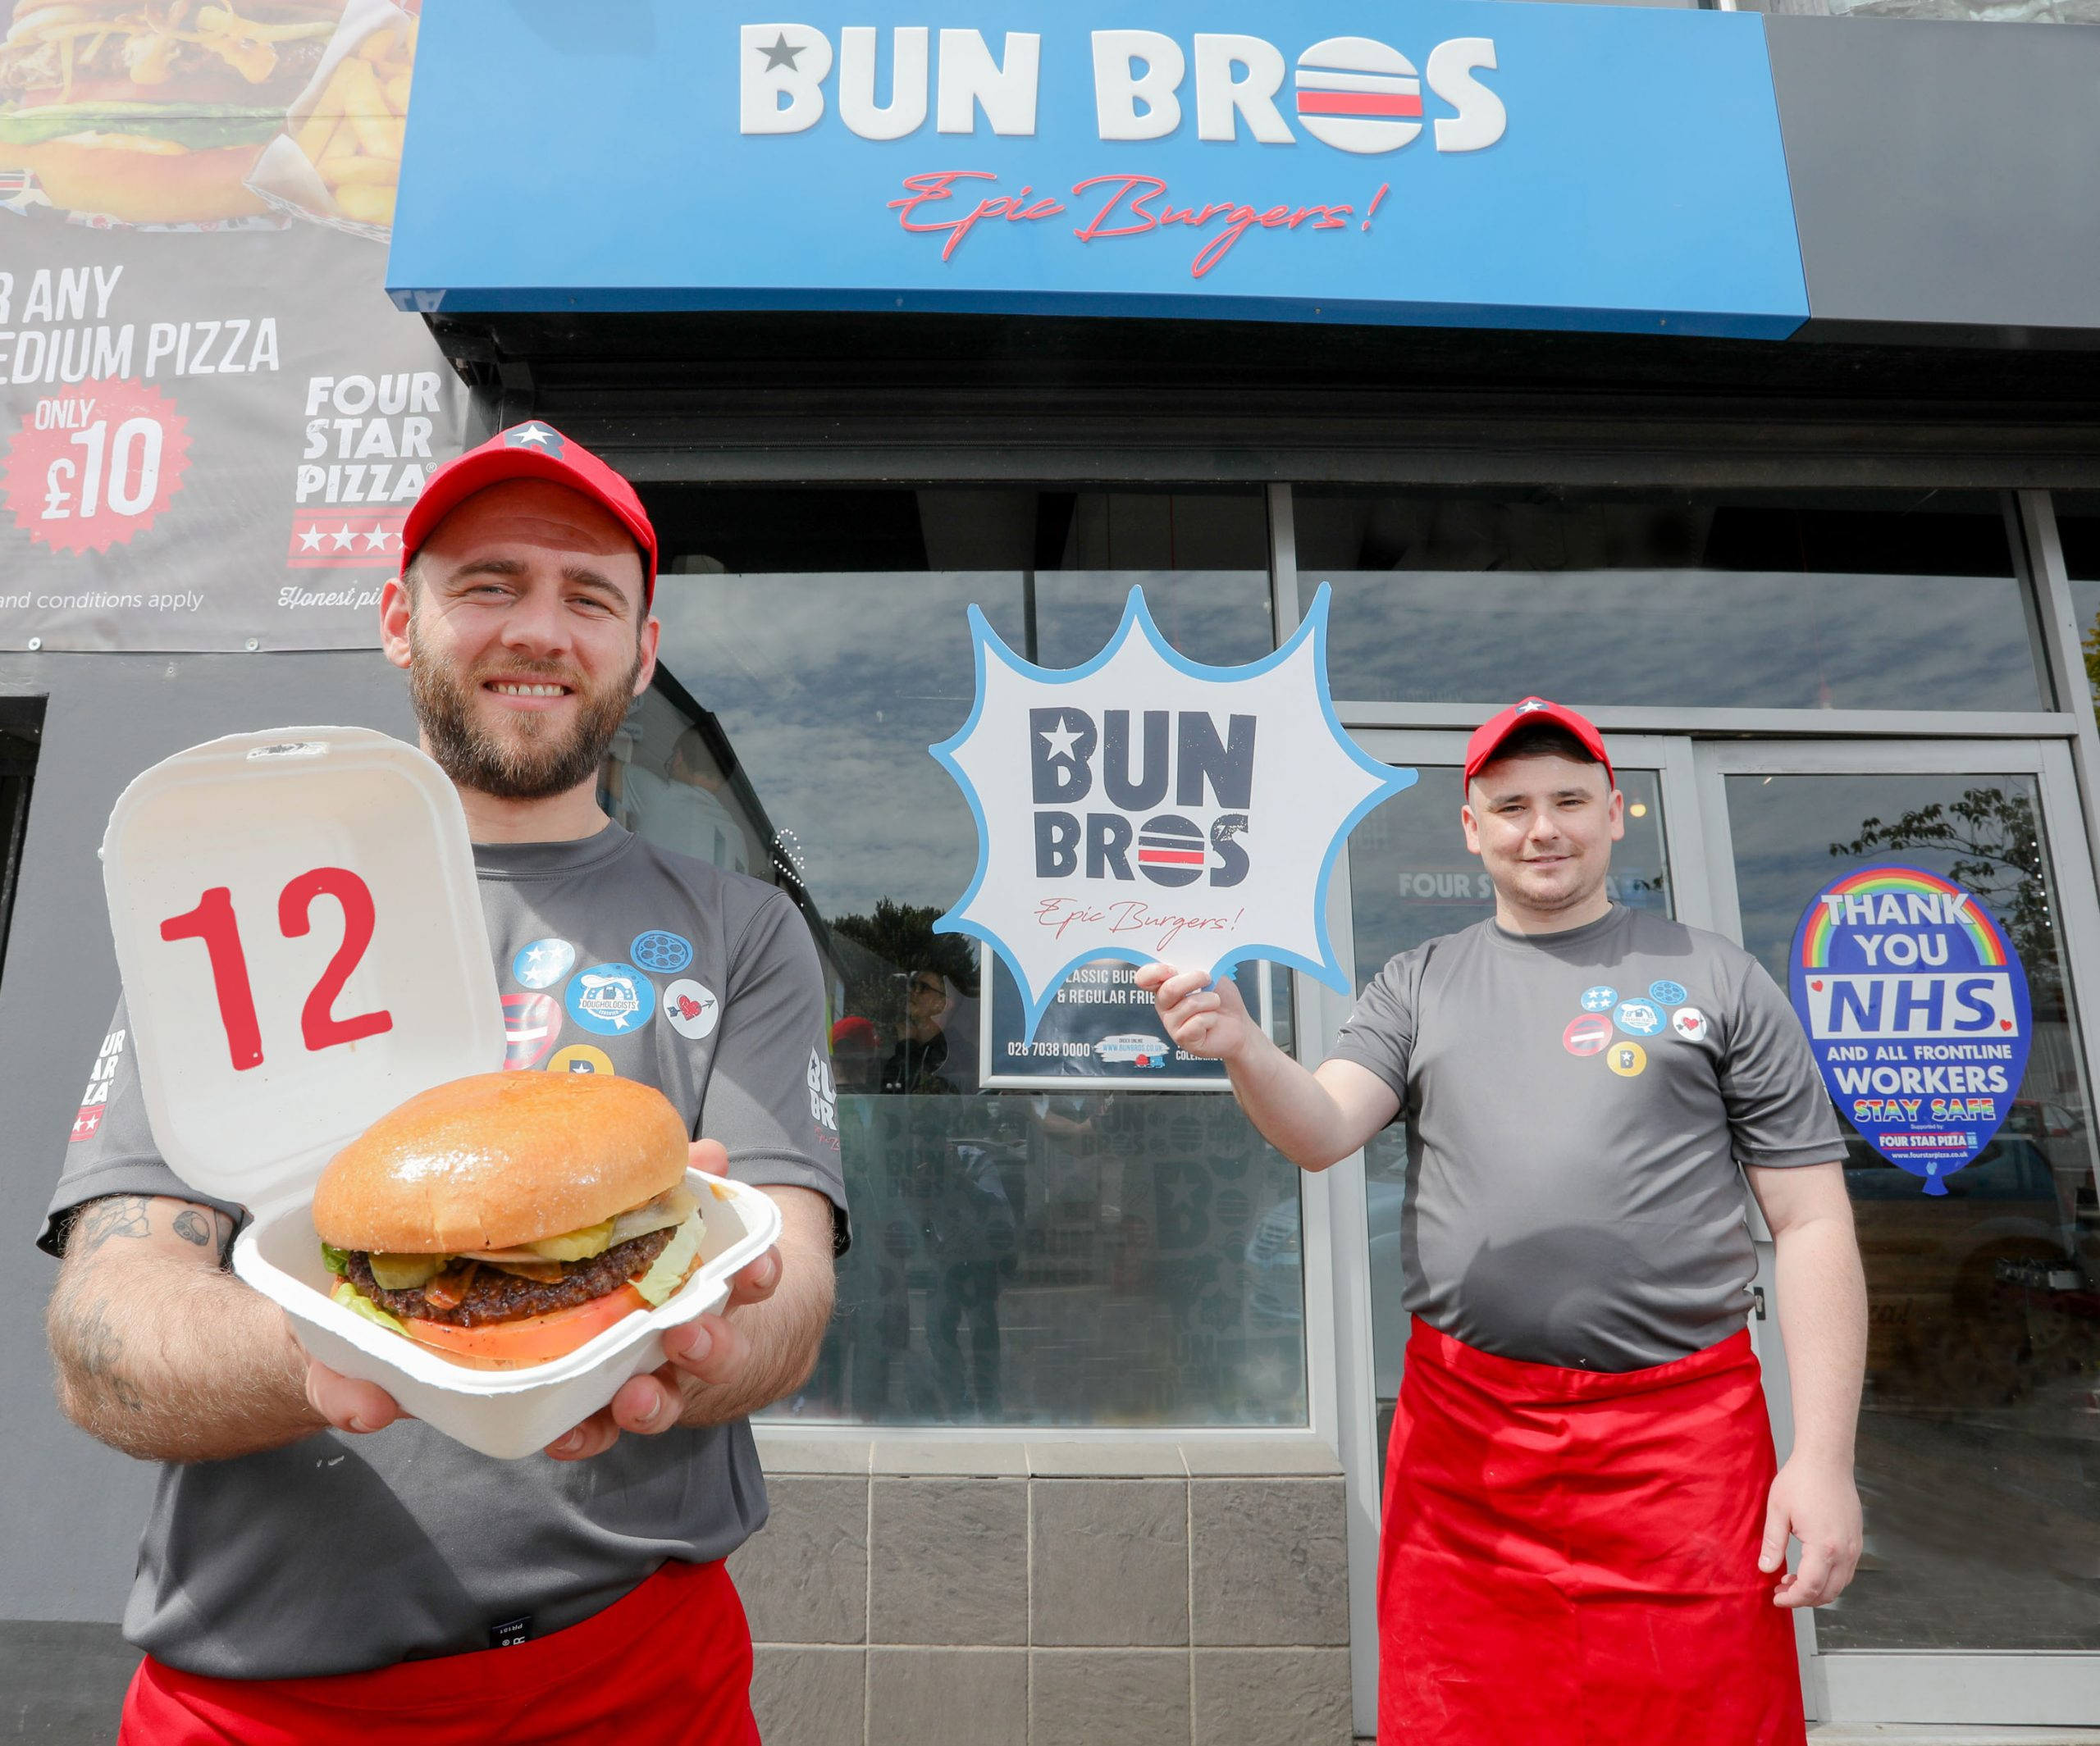 NEW burger chain Bun Bros has opened its first ever store in Northern Ireland, creating 12 new jobs in the Coleraine area after a £50,000 investment. The store will offer burger lovers a vast array of made-to-order burgers produced using only locally sourced Irish Beef. Pictured at the launch are (L-R) Store Manager Ciaran Magee and collegaue Lee Biggart. For more information on Bun Bros or to order, go to https://bunbros.co.uk or check the company out on social media at https://www.facebook.com/BunBrosColeraine